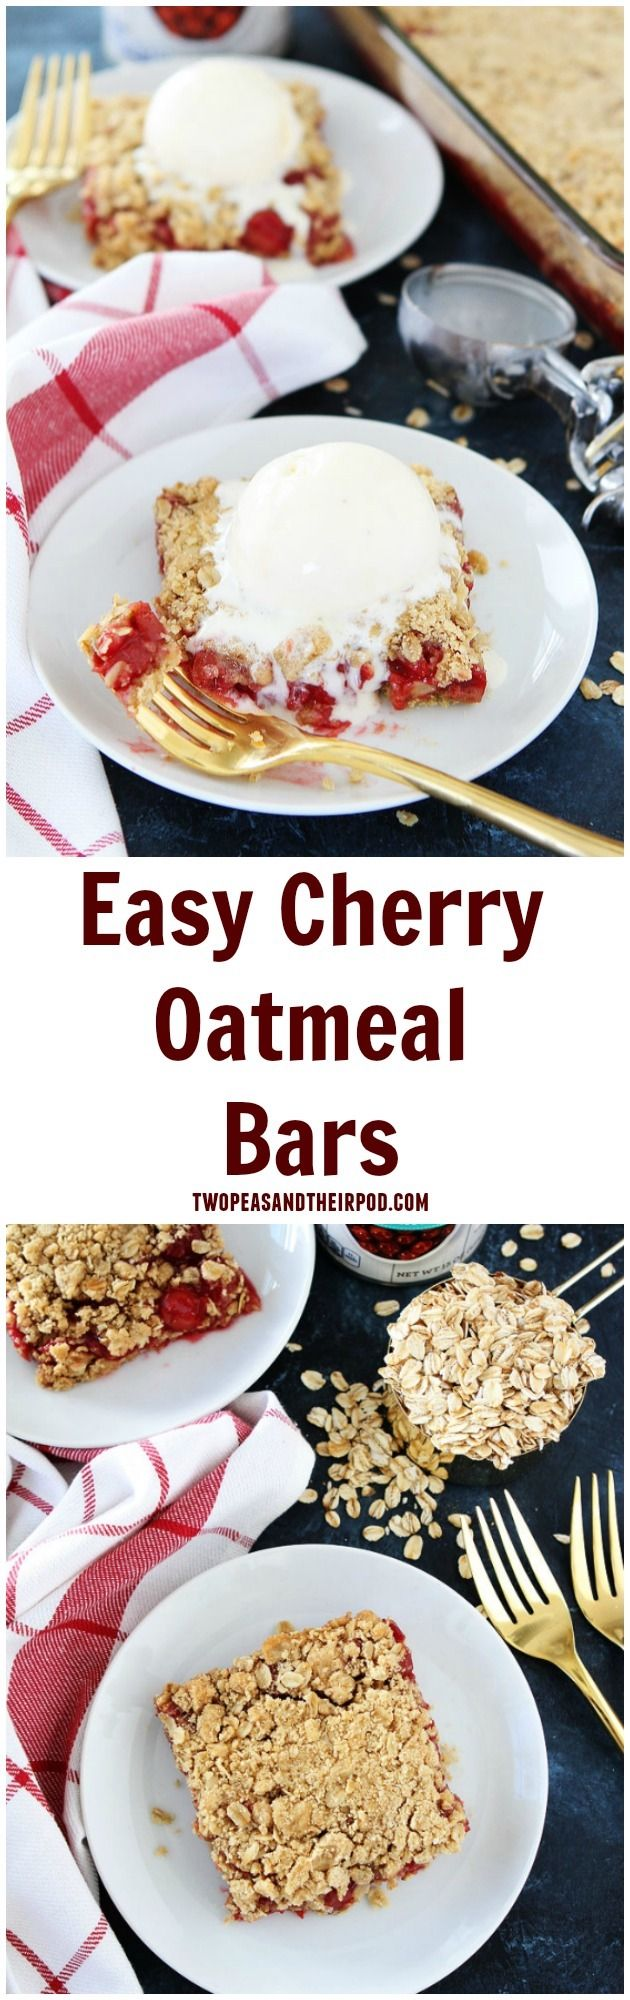 Easy Cherry Oatmeal Bars Recipe on twopeasandtheirpod.com If you like cherry pie you will LOVE these easy cherry dessert bars! They are a family favorite!